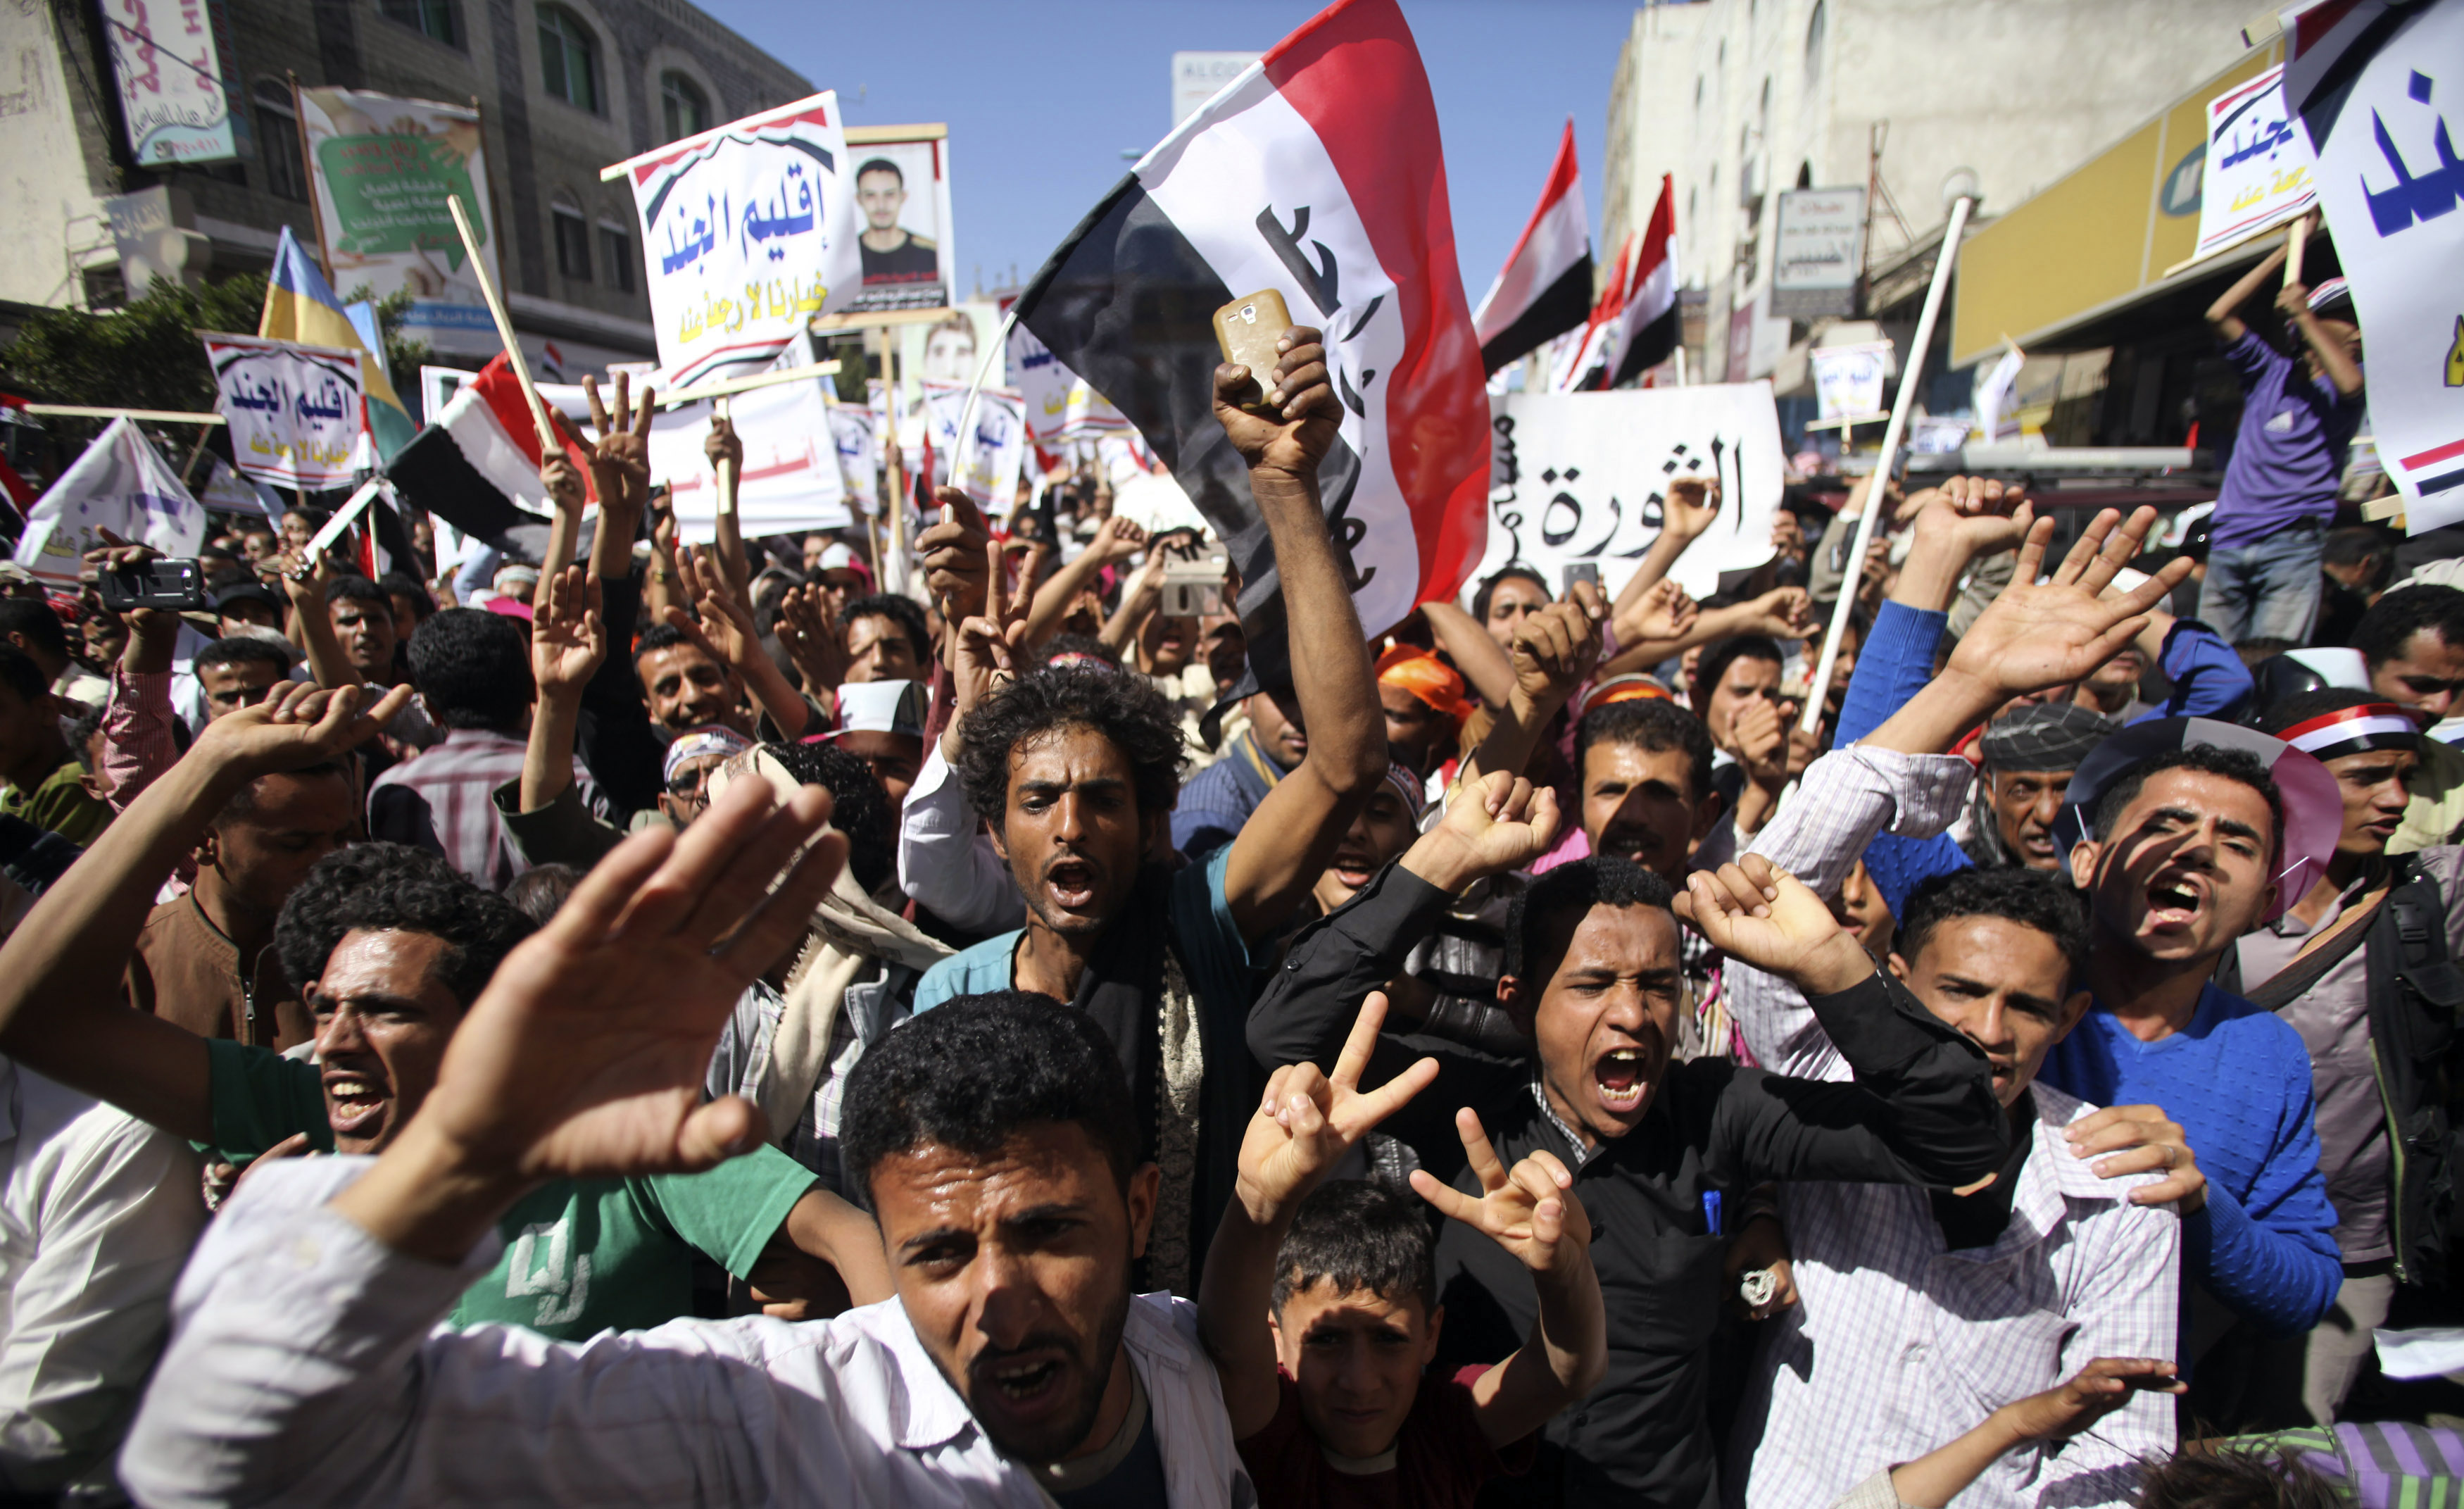 Anti-Houthi protesters shout slogans to commemorate the fourth anniversary of the uprising that toppled former president Saleh, in Taiz